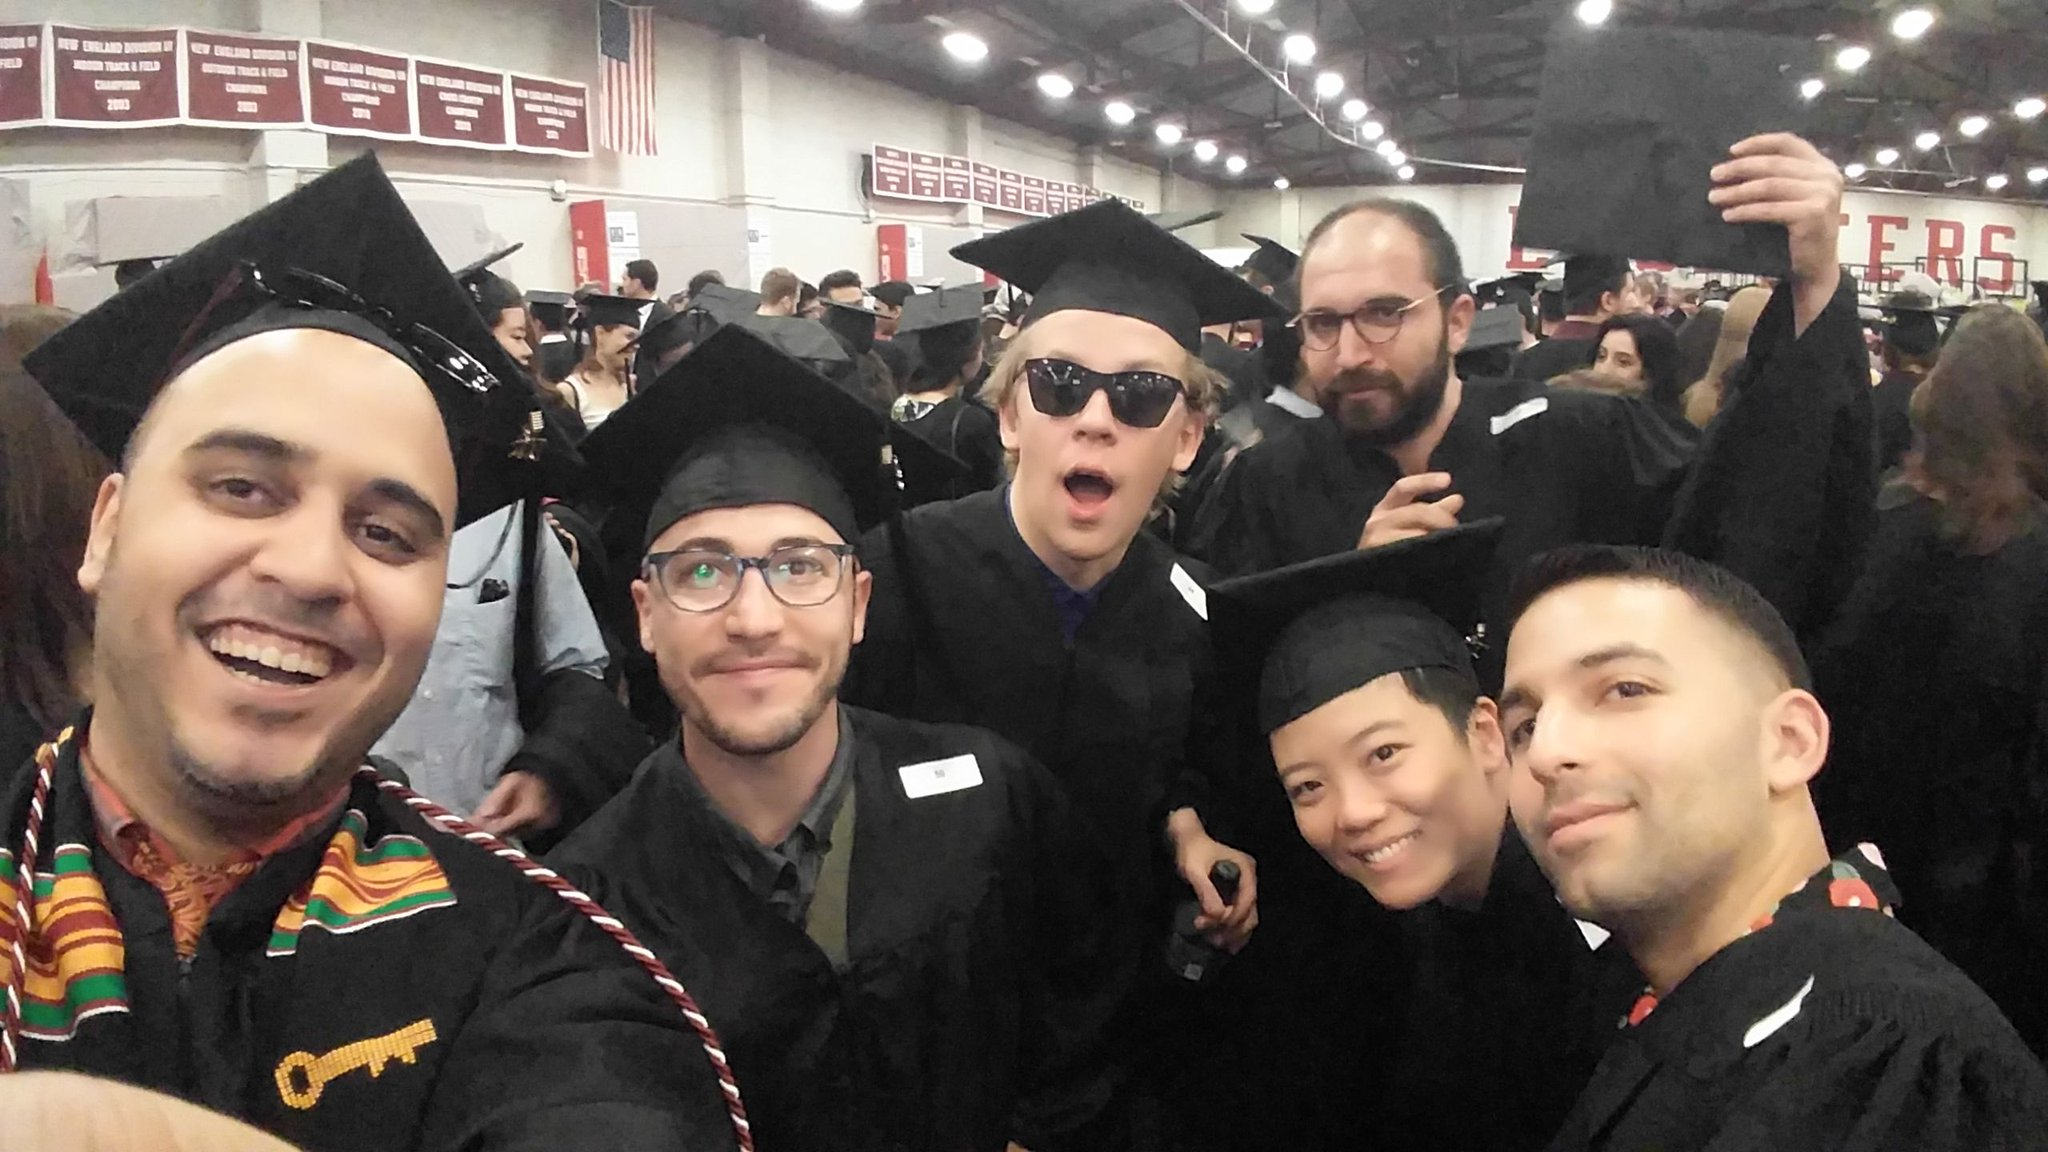 Congratulations to an amazing group of grads!!! Photo cred: @ronmartinACT #MIT2017 @mitcommencement https://t.co/iuyTIuBLSa